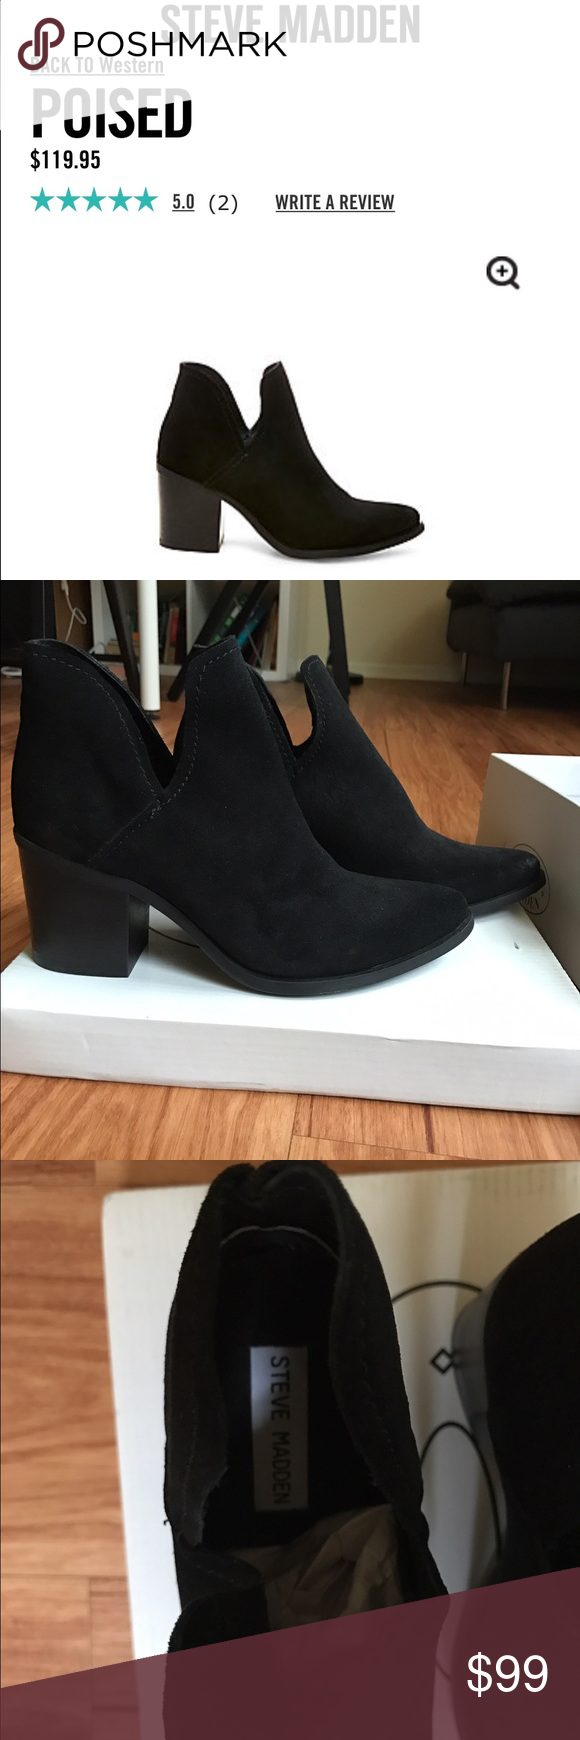 NWT Steve Madden Black Suede Poised Boots 8.5 Never been worn, genuine Steve Madden boots. I accidentally ordered two of the same boots and need to sell the other pair. 2.75 inch heel, leather lining, rubber sole. Runs small. Steve Madden Shoes Ankle Boots & Booties